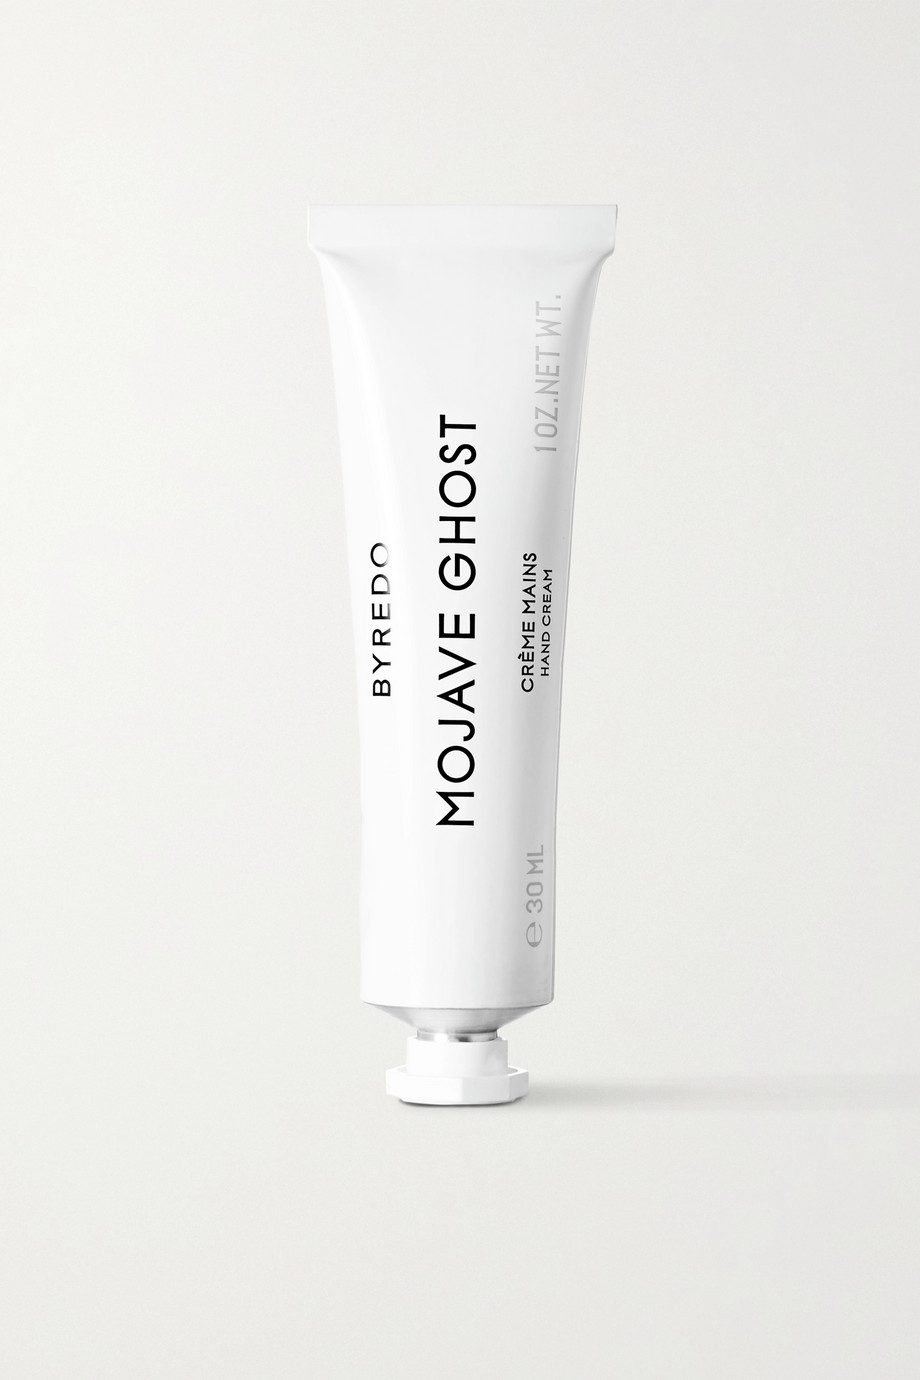 Byredo Mojave Ghost Hand Cream, 30ml